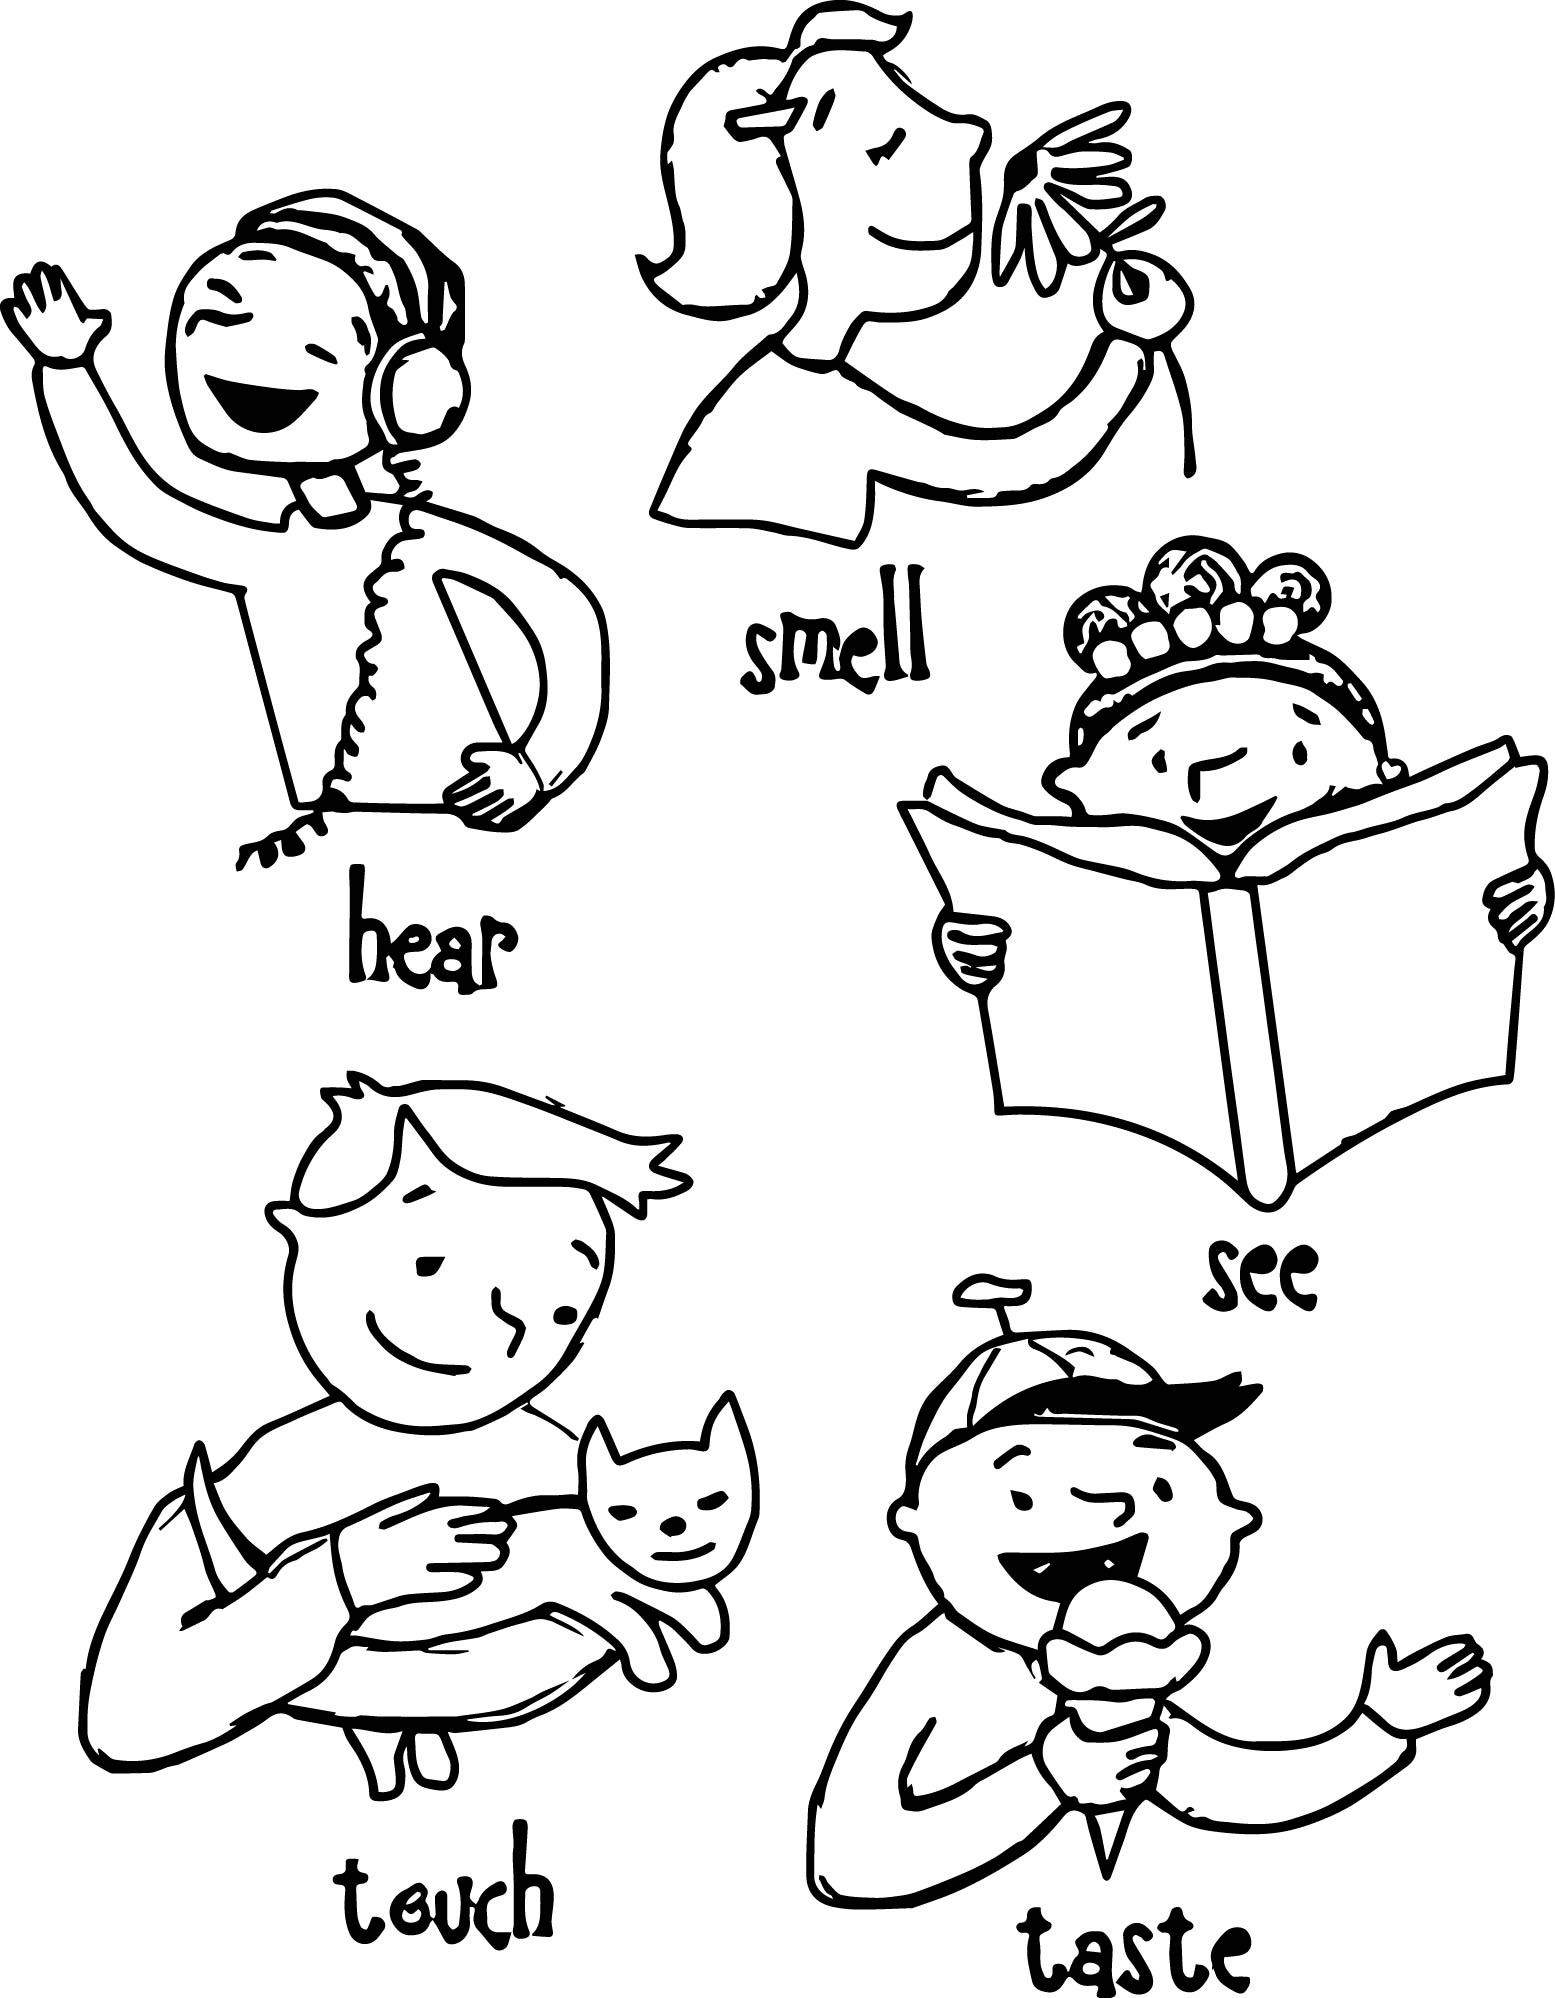 Awesome Children 5 Senses Coloring Page With Images